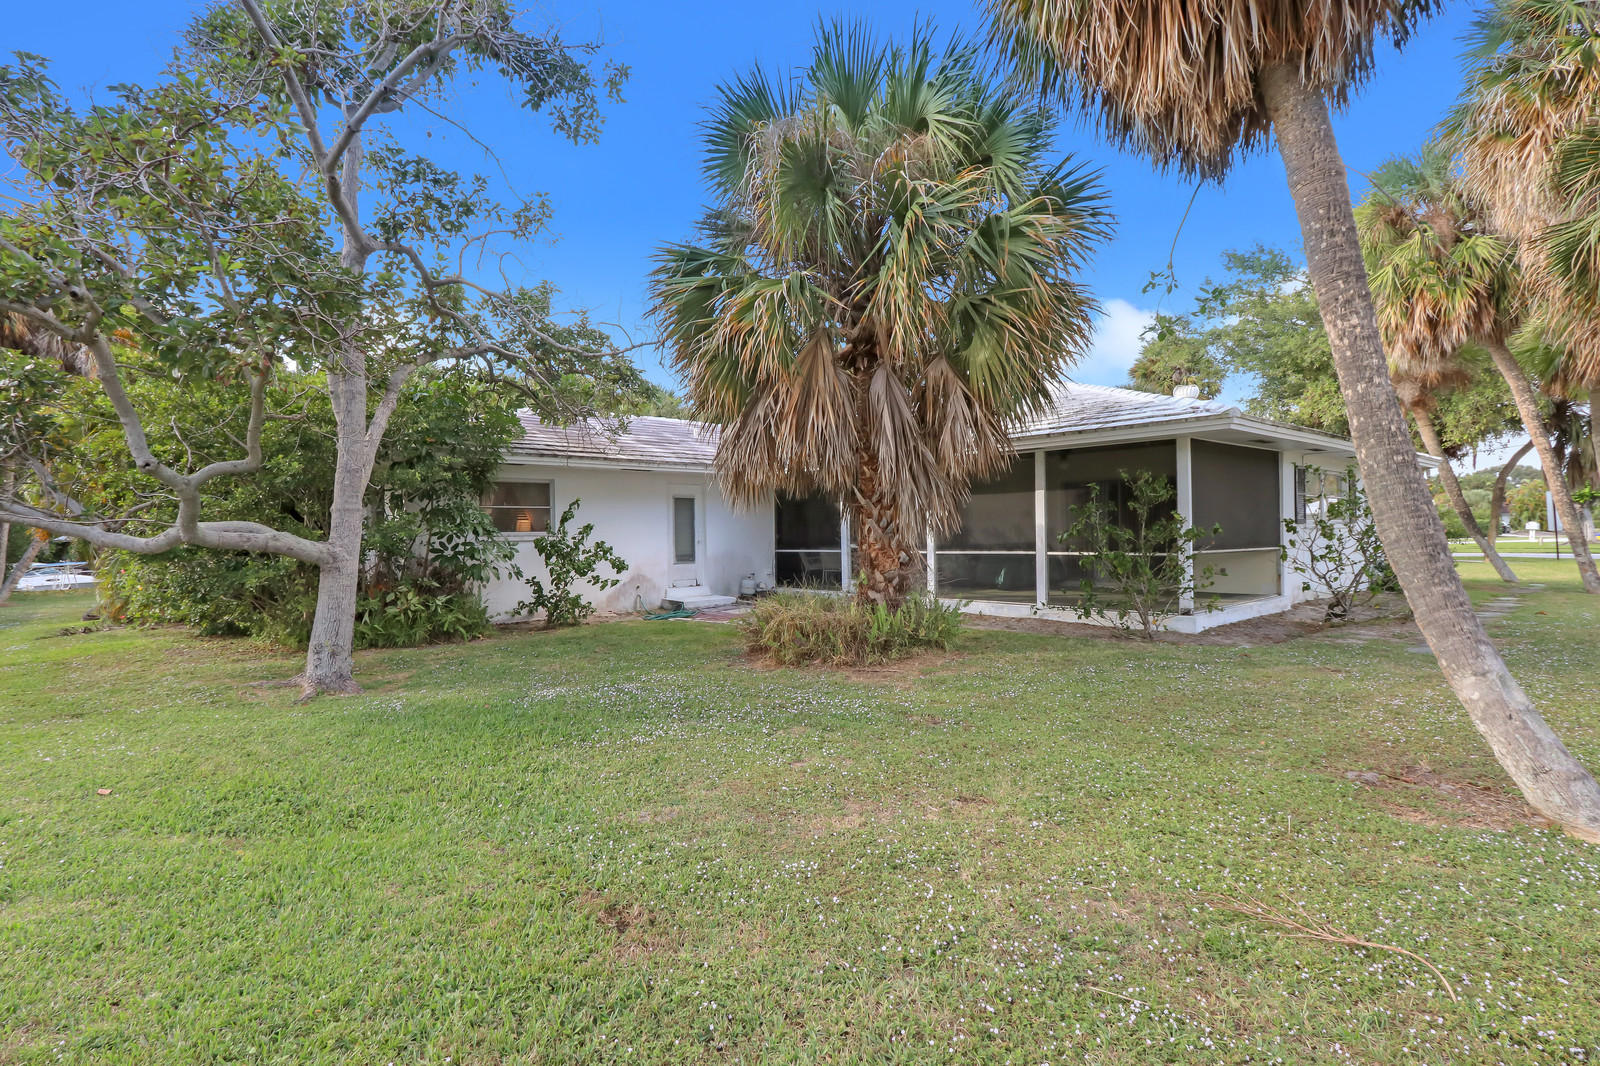 11721 Lake Shore Place, North Palm Beach, Florida 33408, ,C,Single family,Lake Shore,RX-10477926